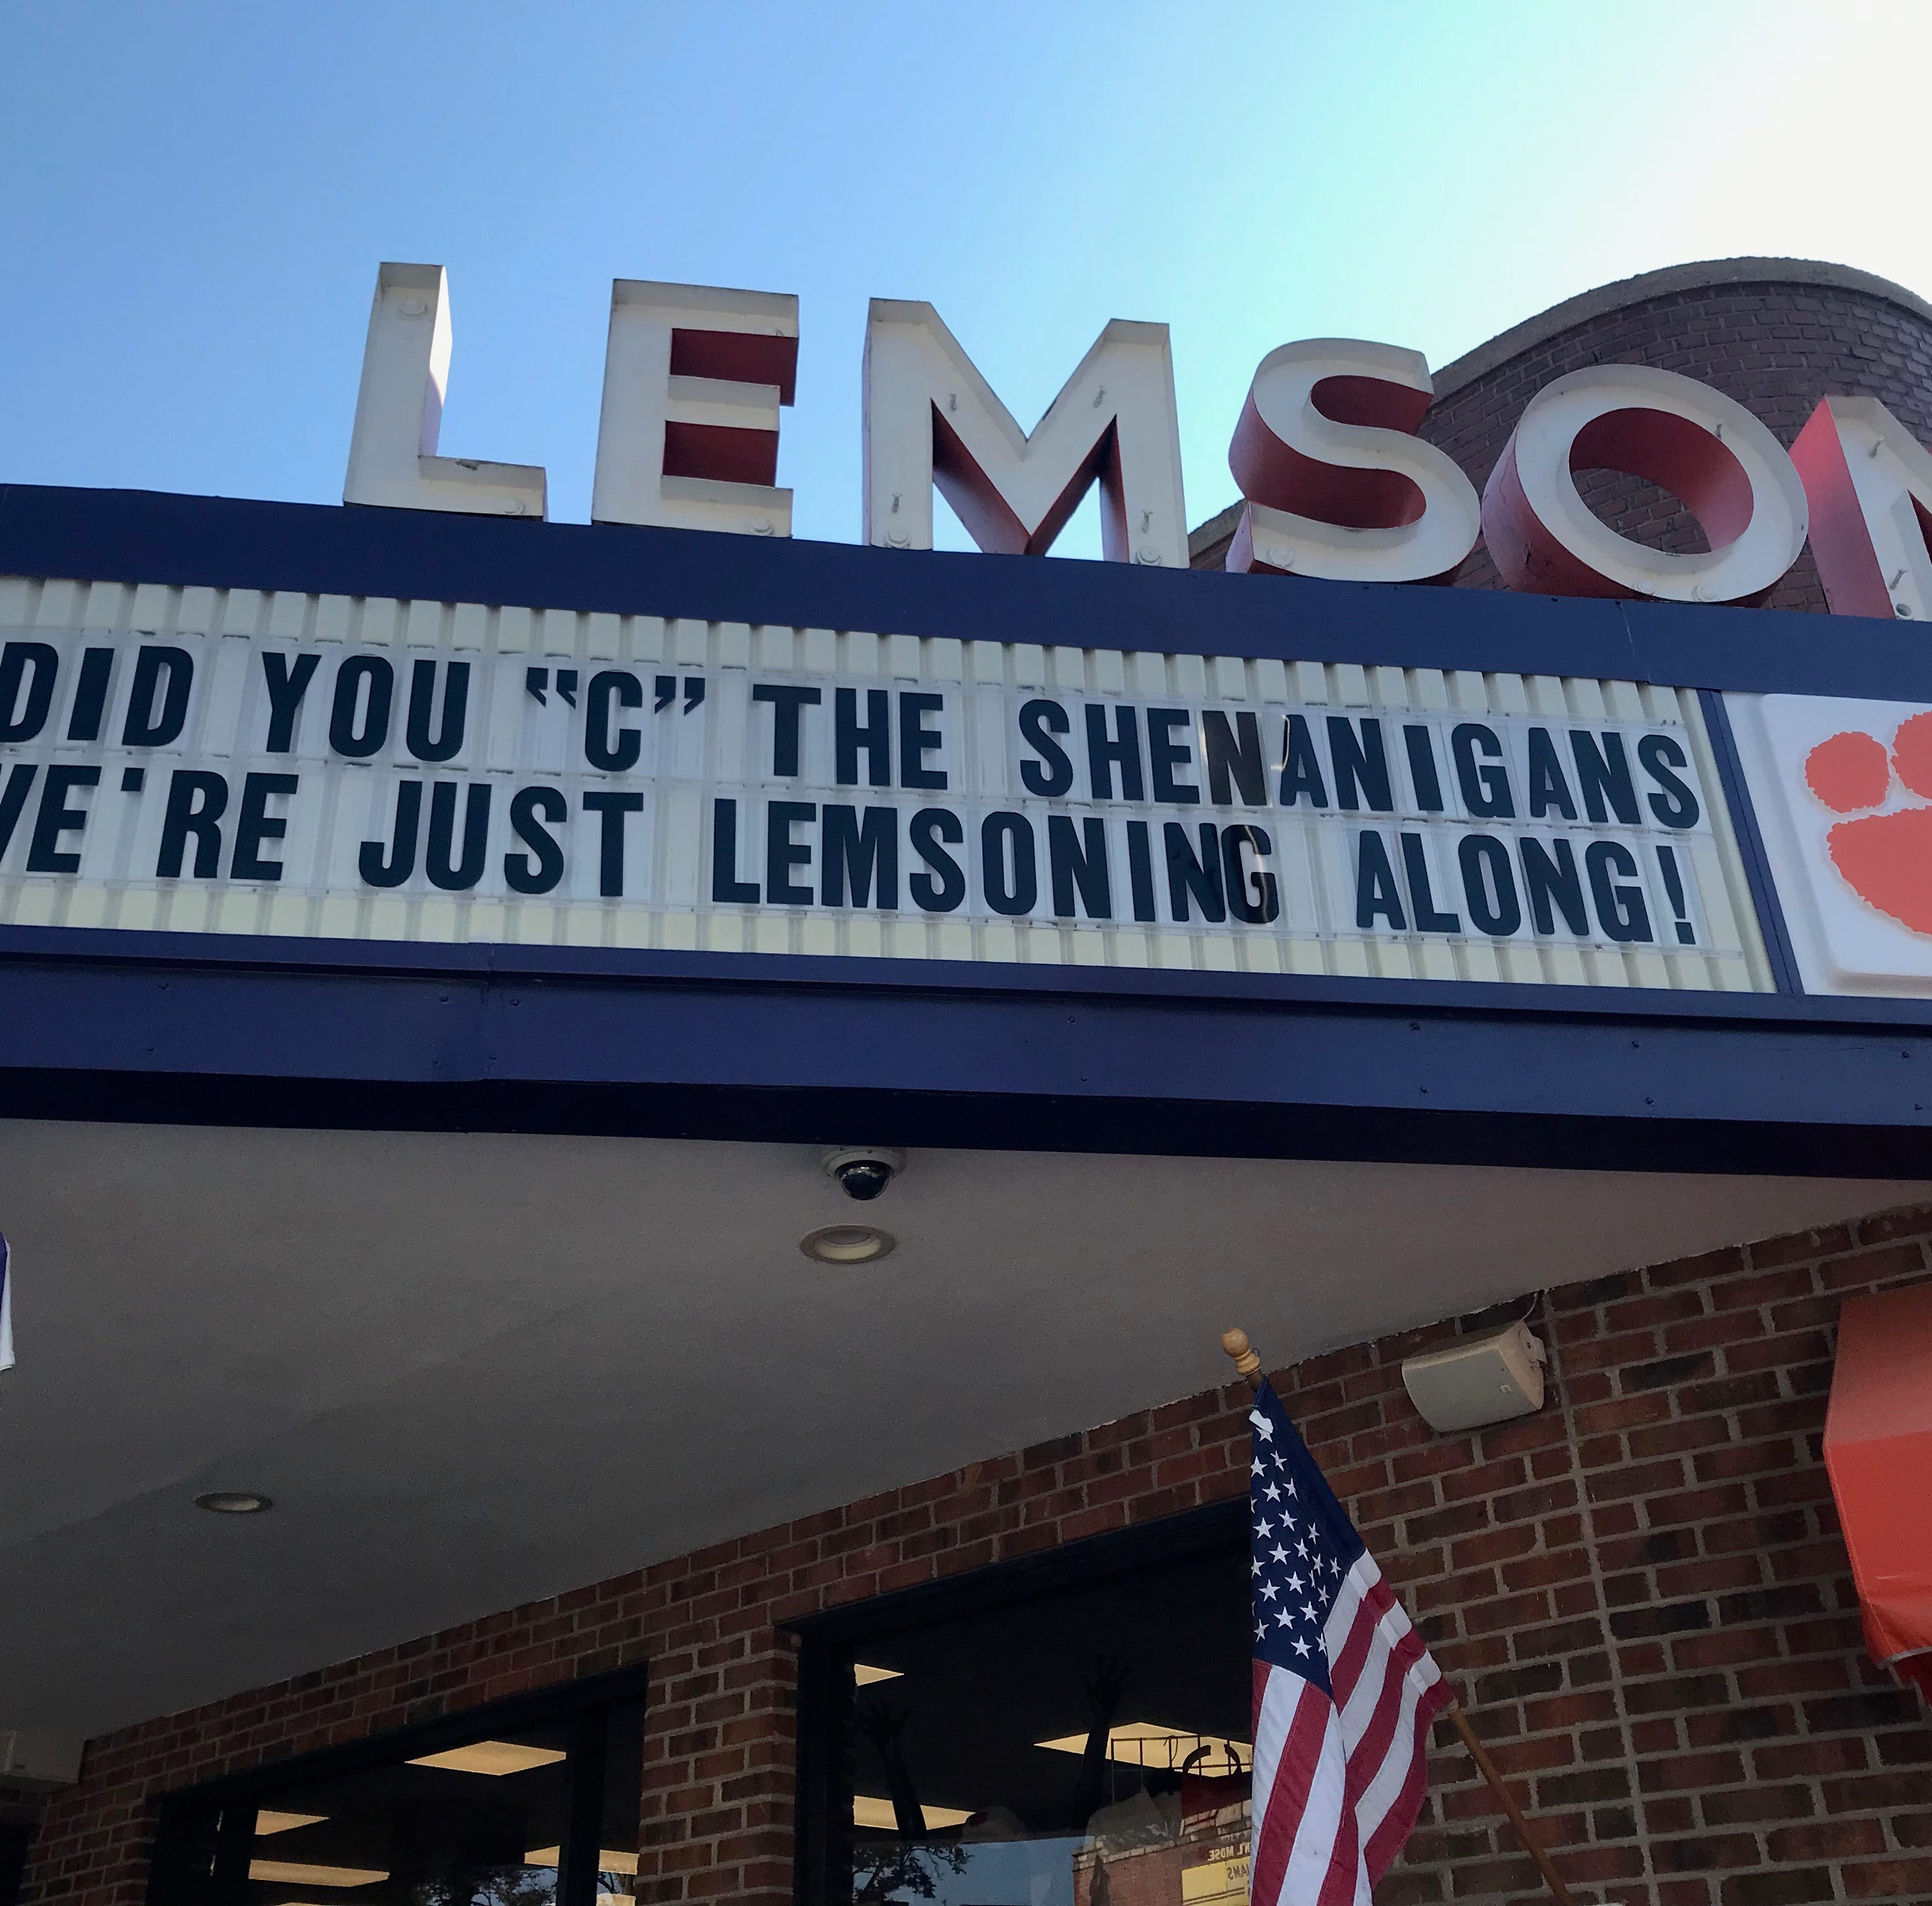 Lost at 'C': Letter stolen off iconic marquee in downtown Clemson